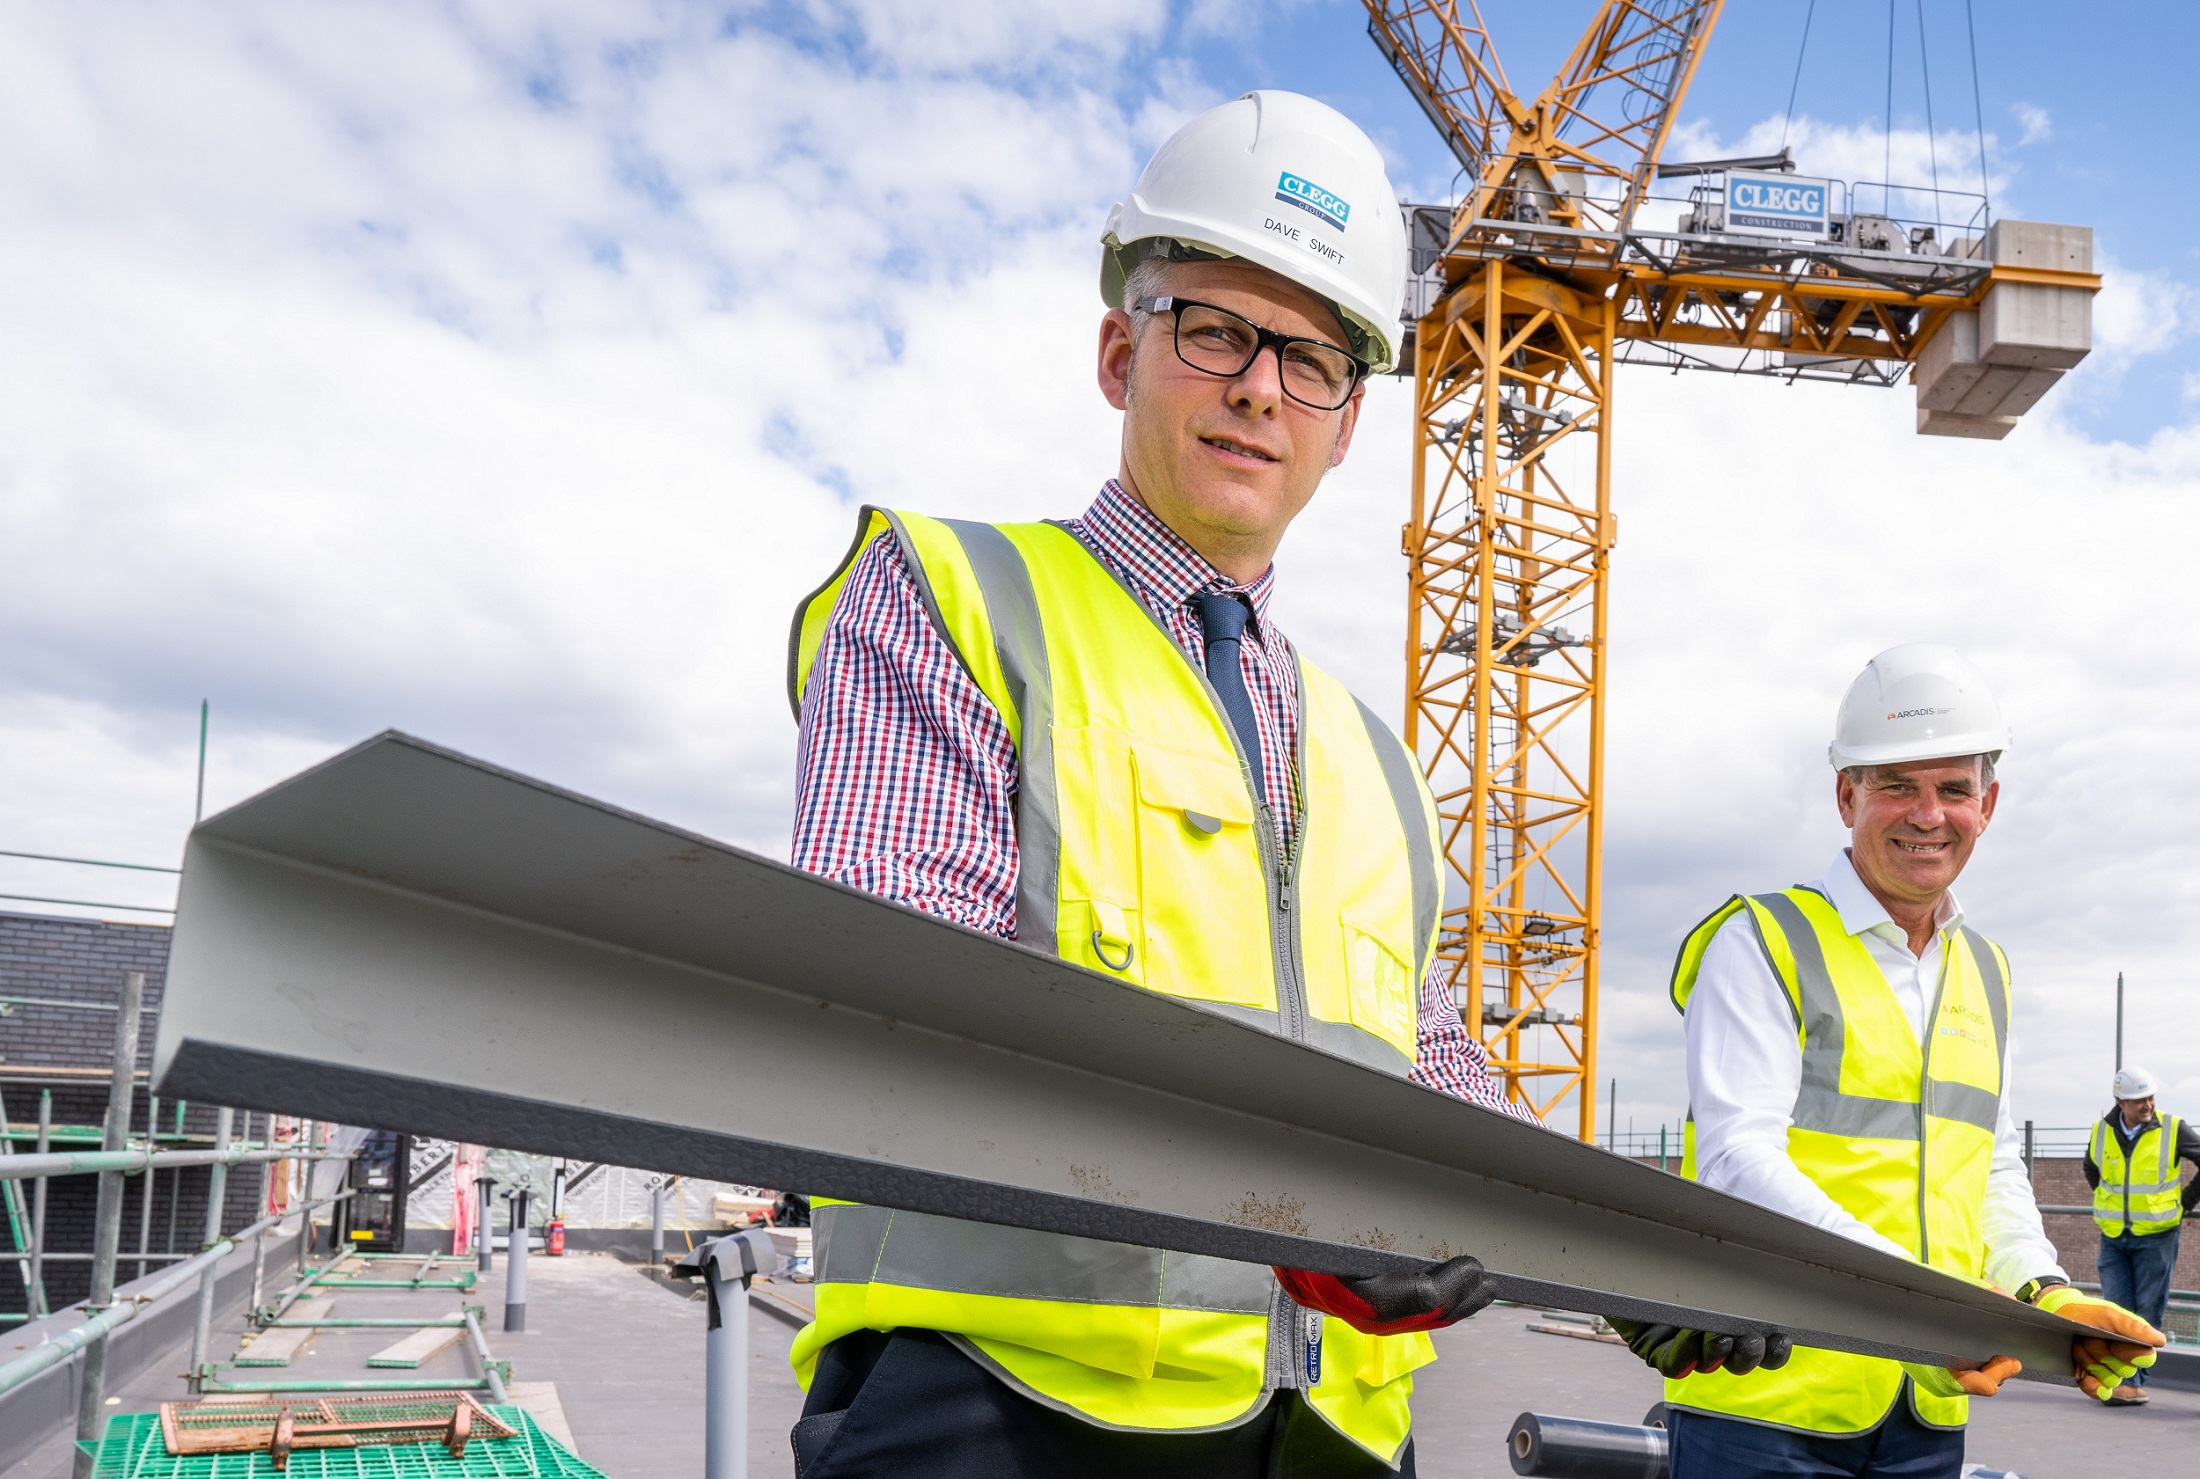 GILDERS YARD REACHES NEW HEIGHTS WITH TOPPING OUT CEREMONY